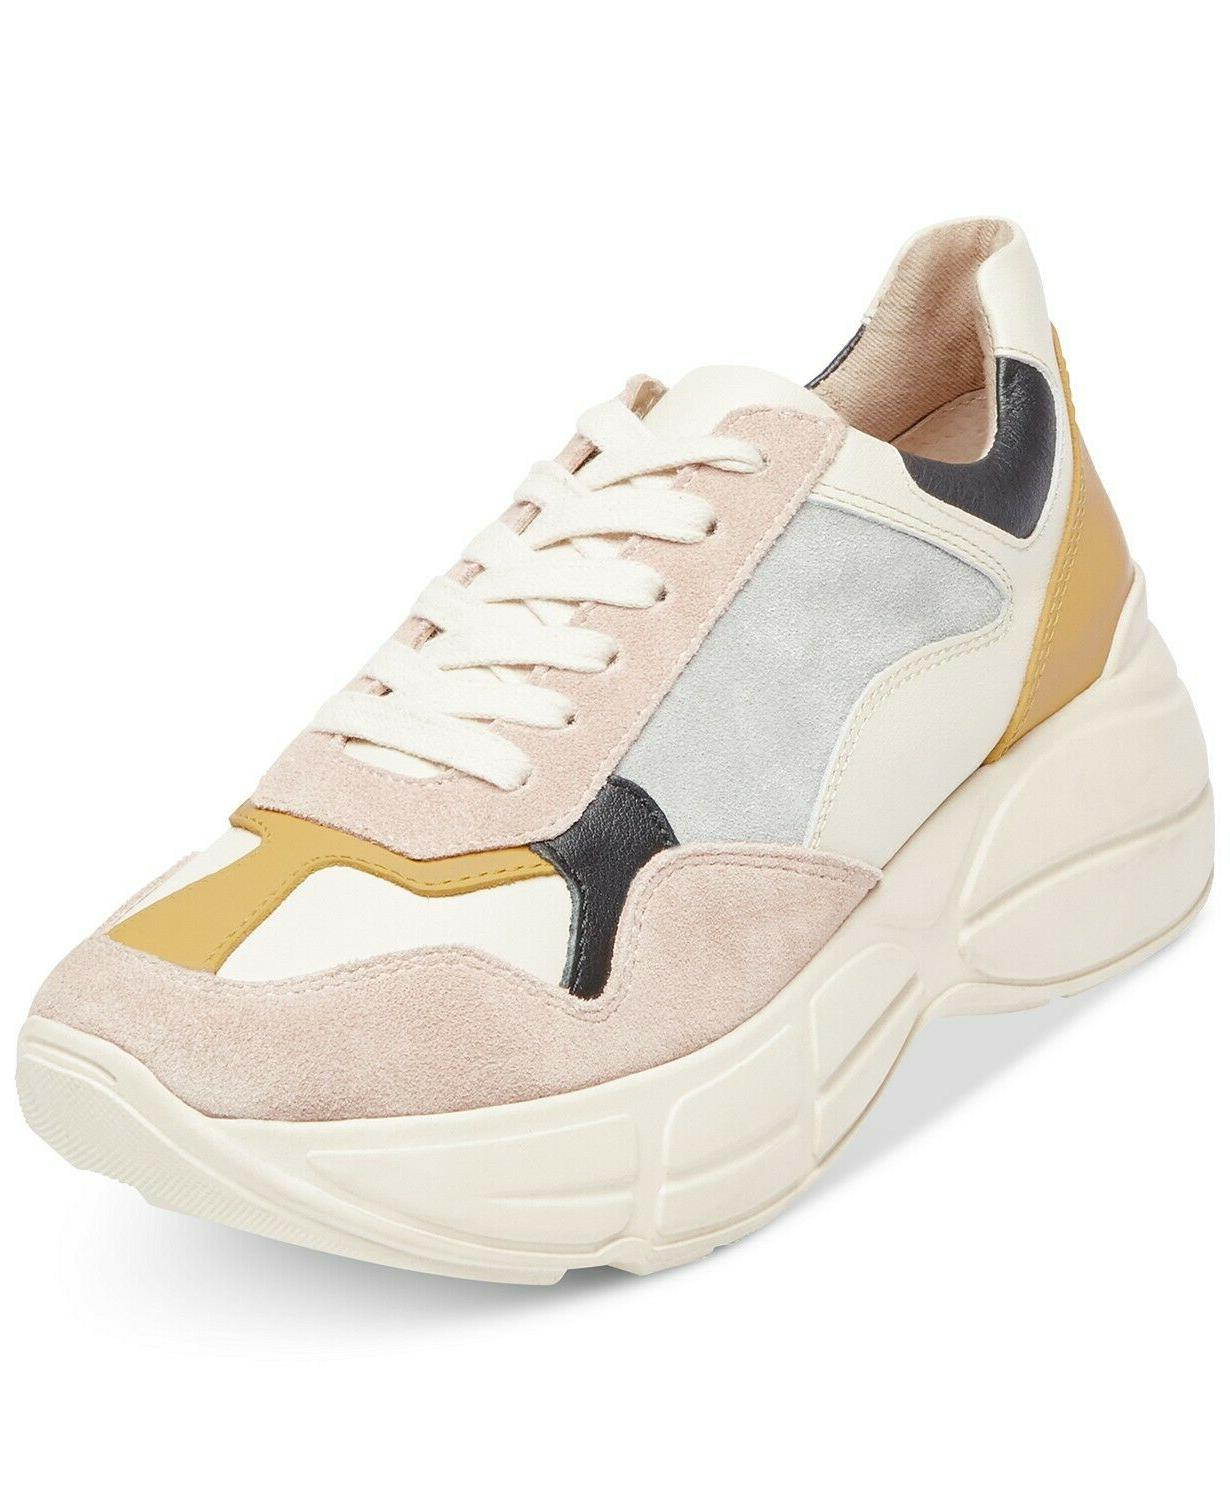 women s memory chunky sneakers size 7